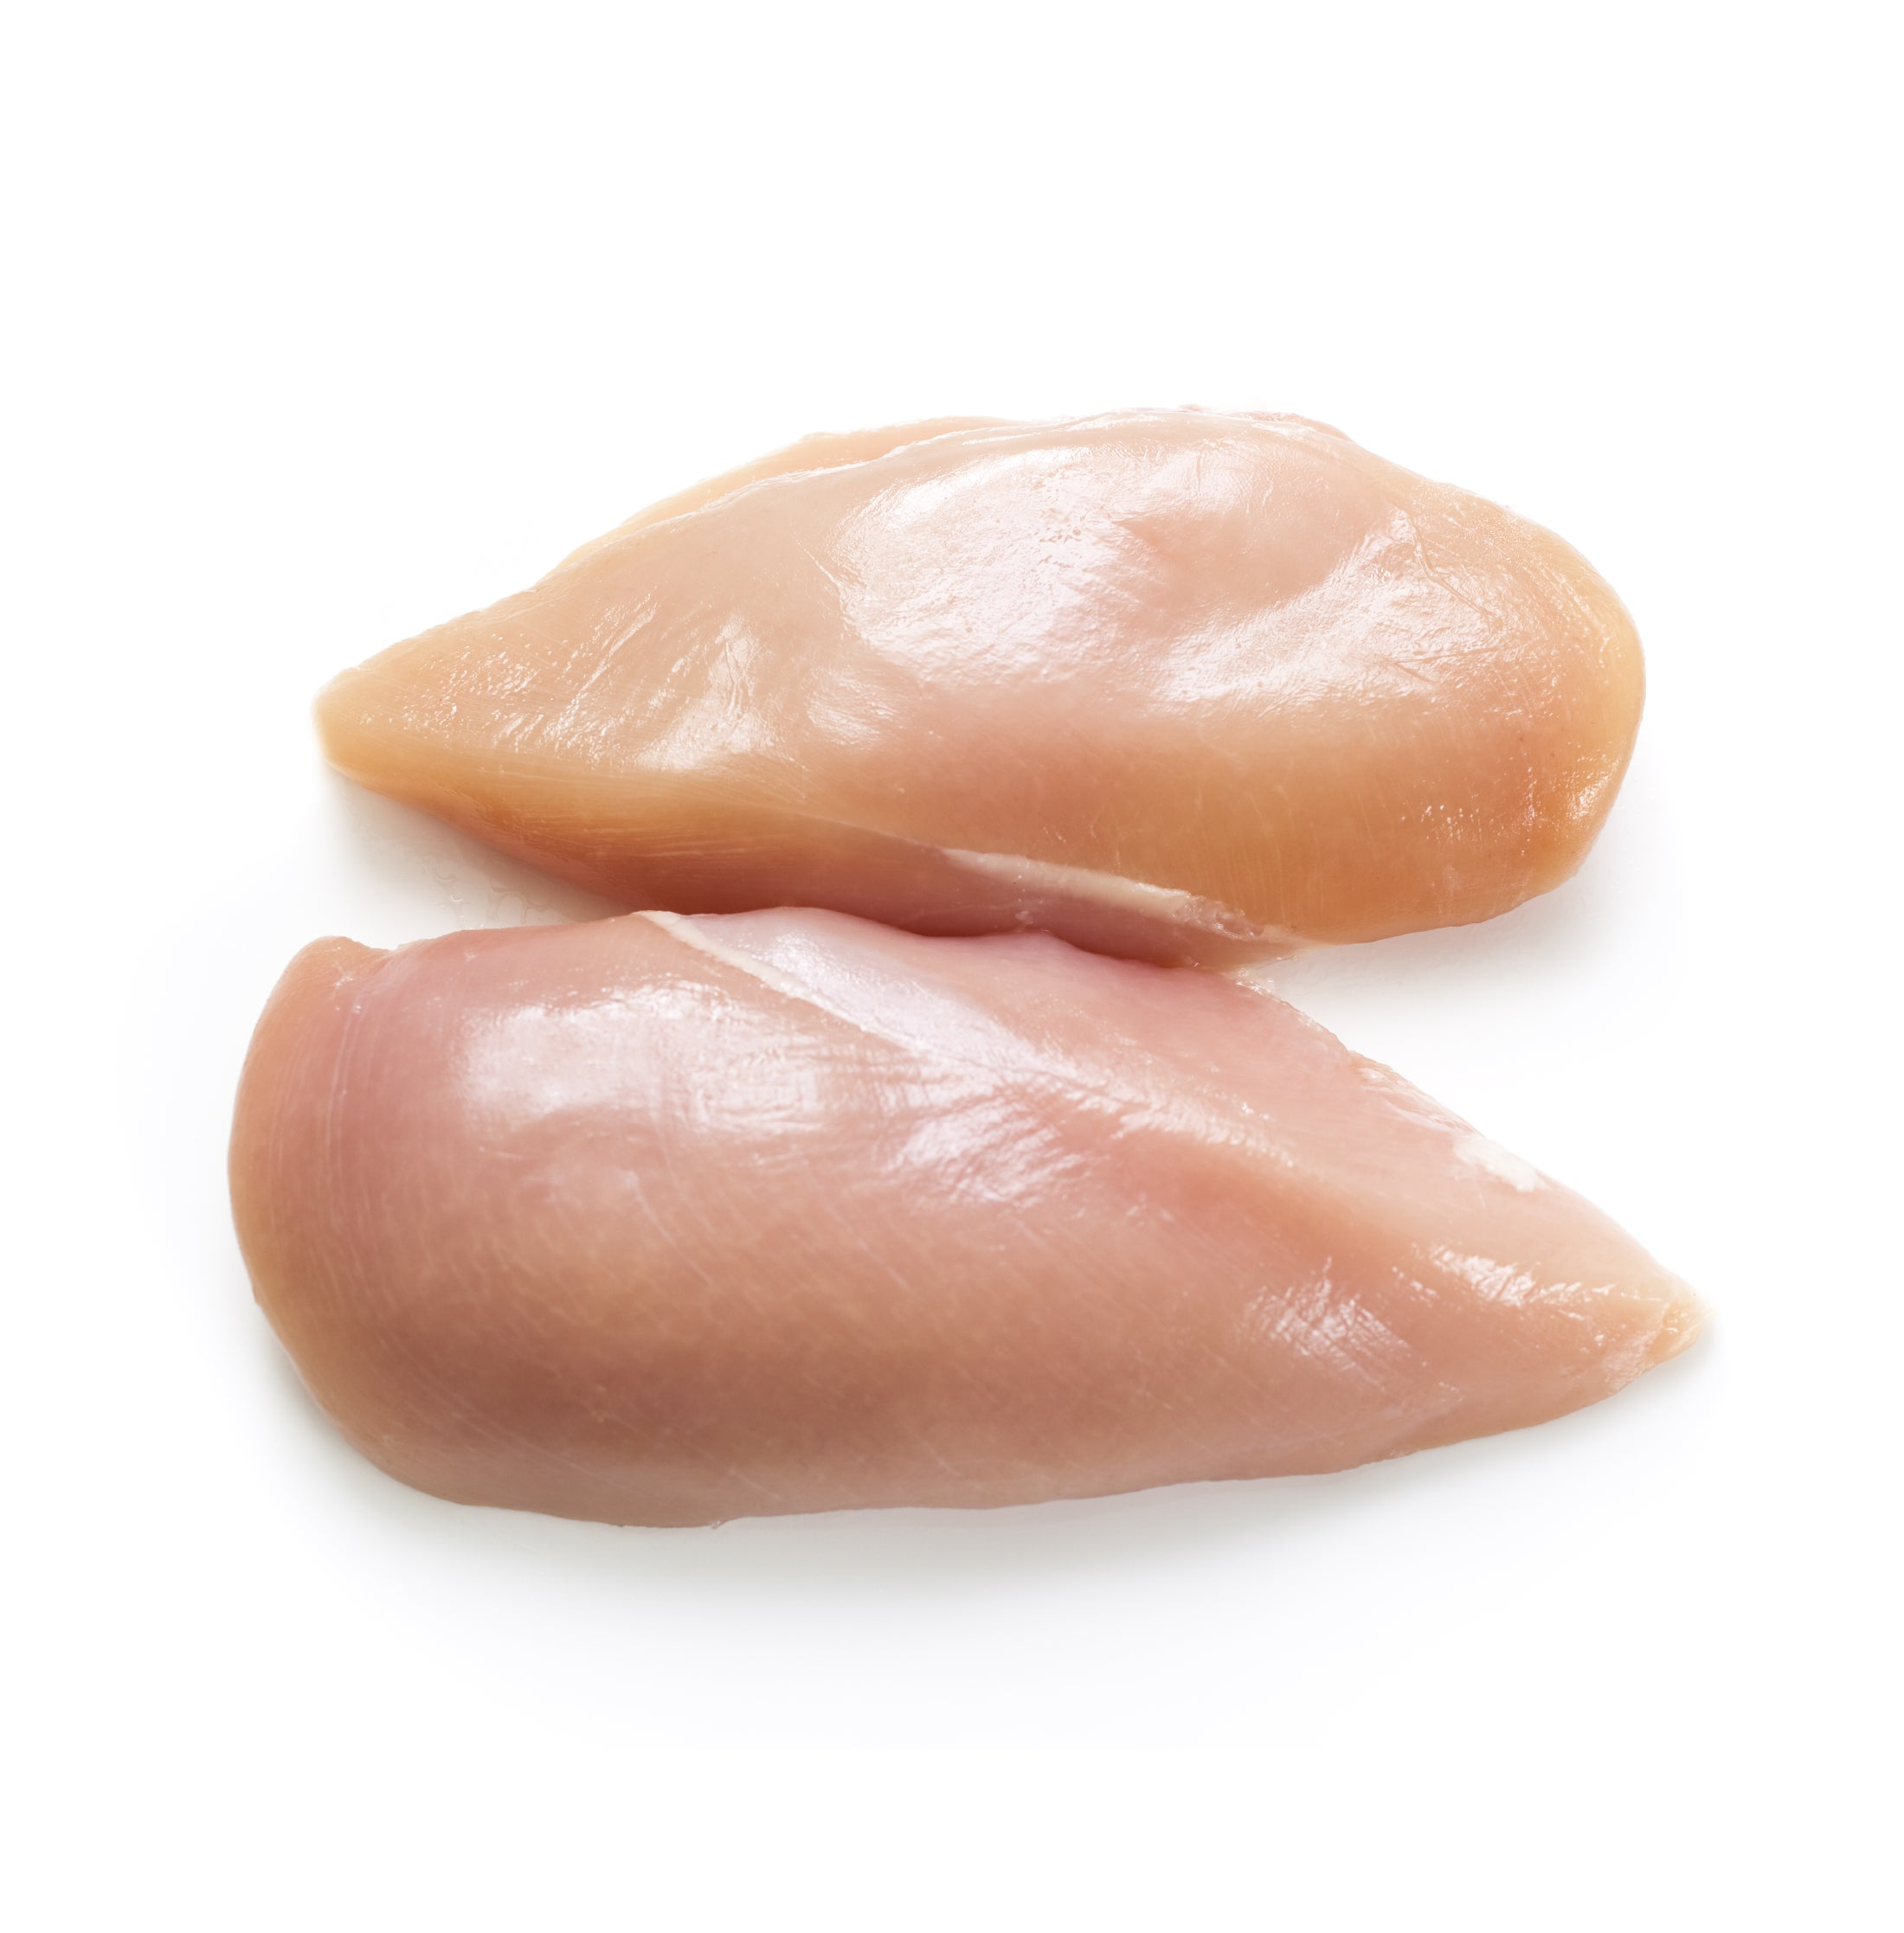 Wise Organic Pastures Boneless/ Skinless Kosher Chicken Breast